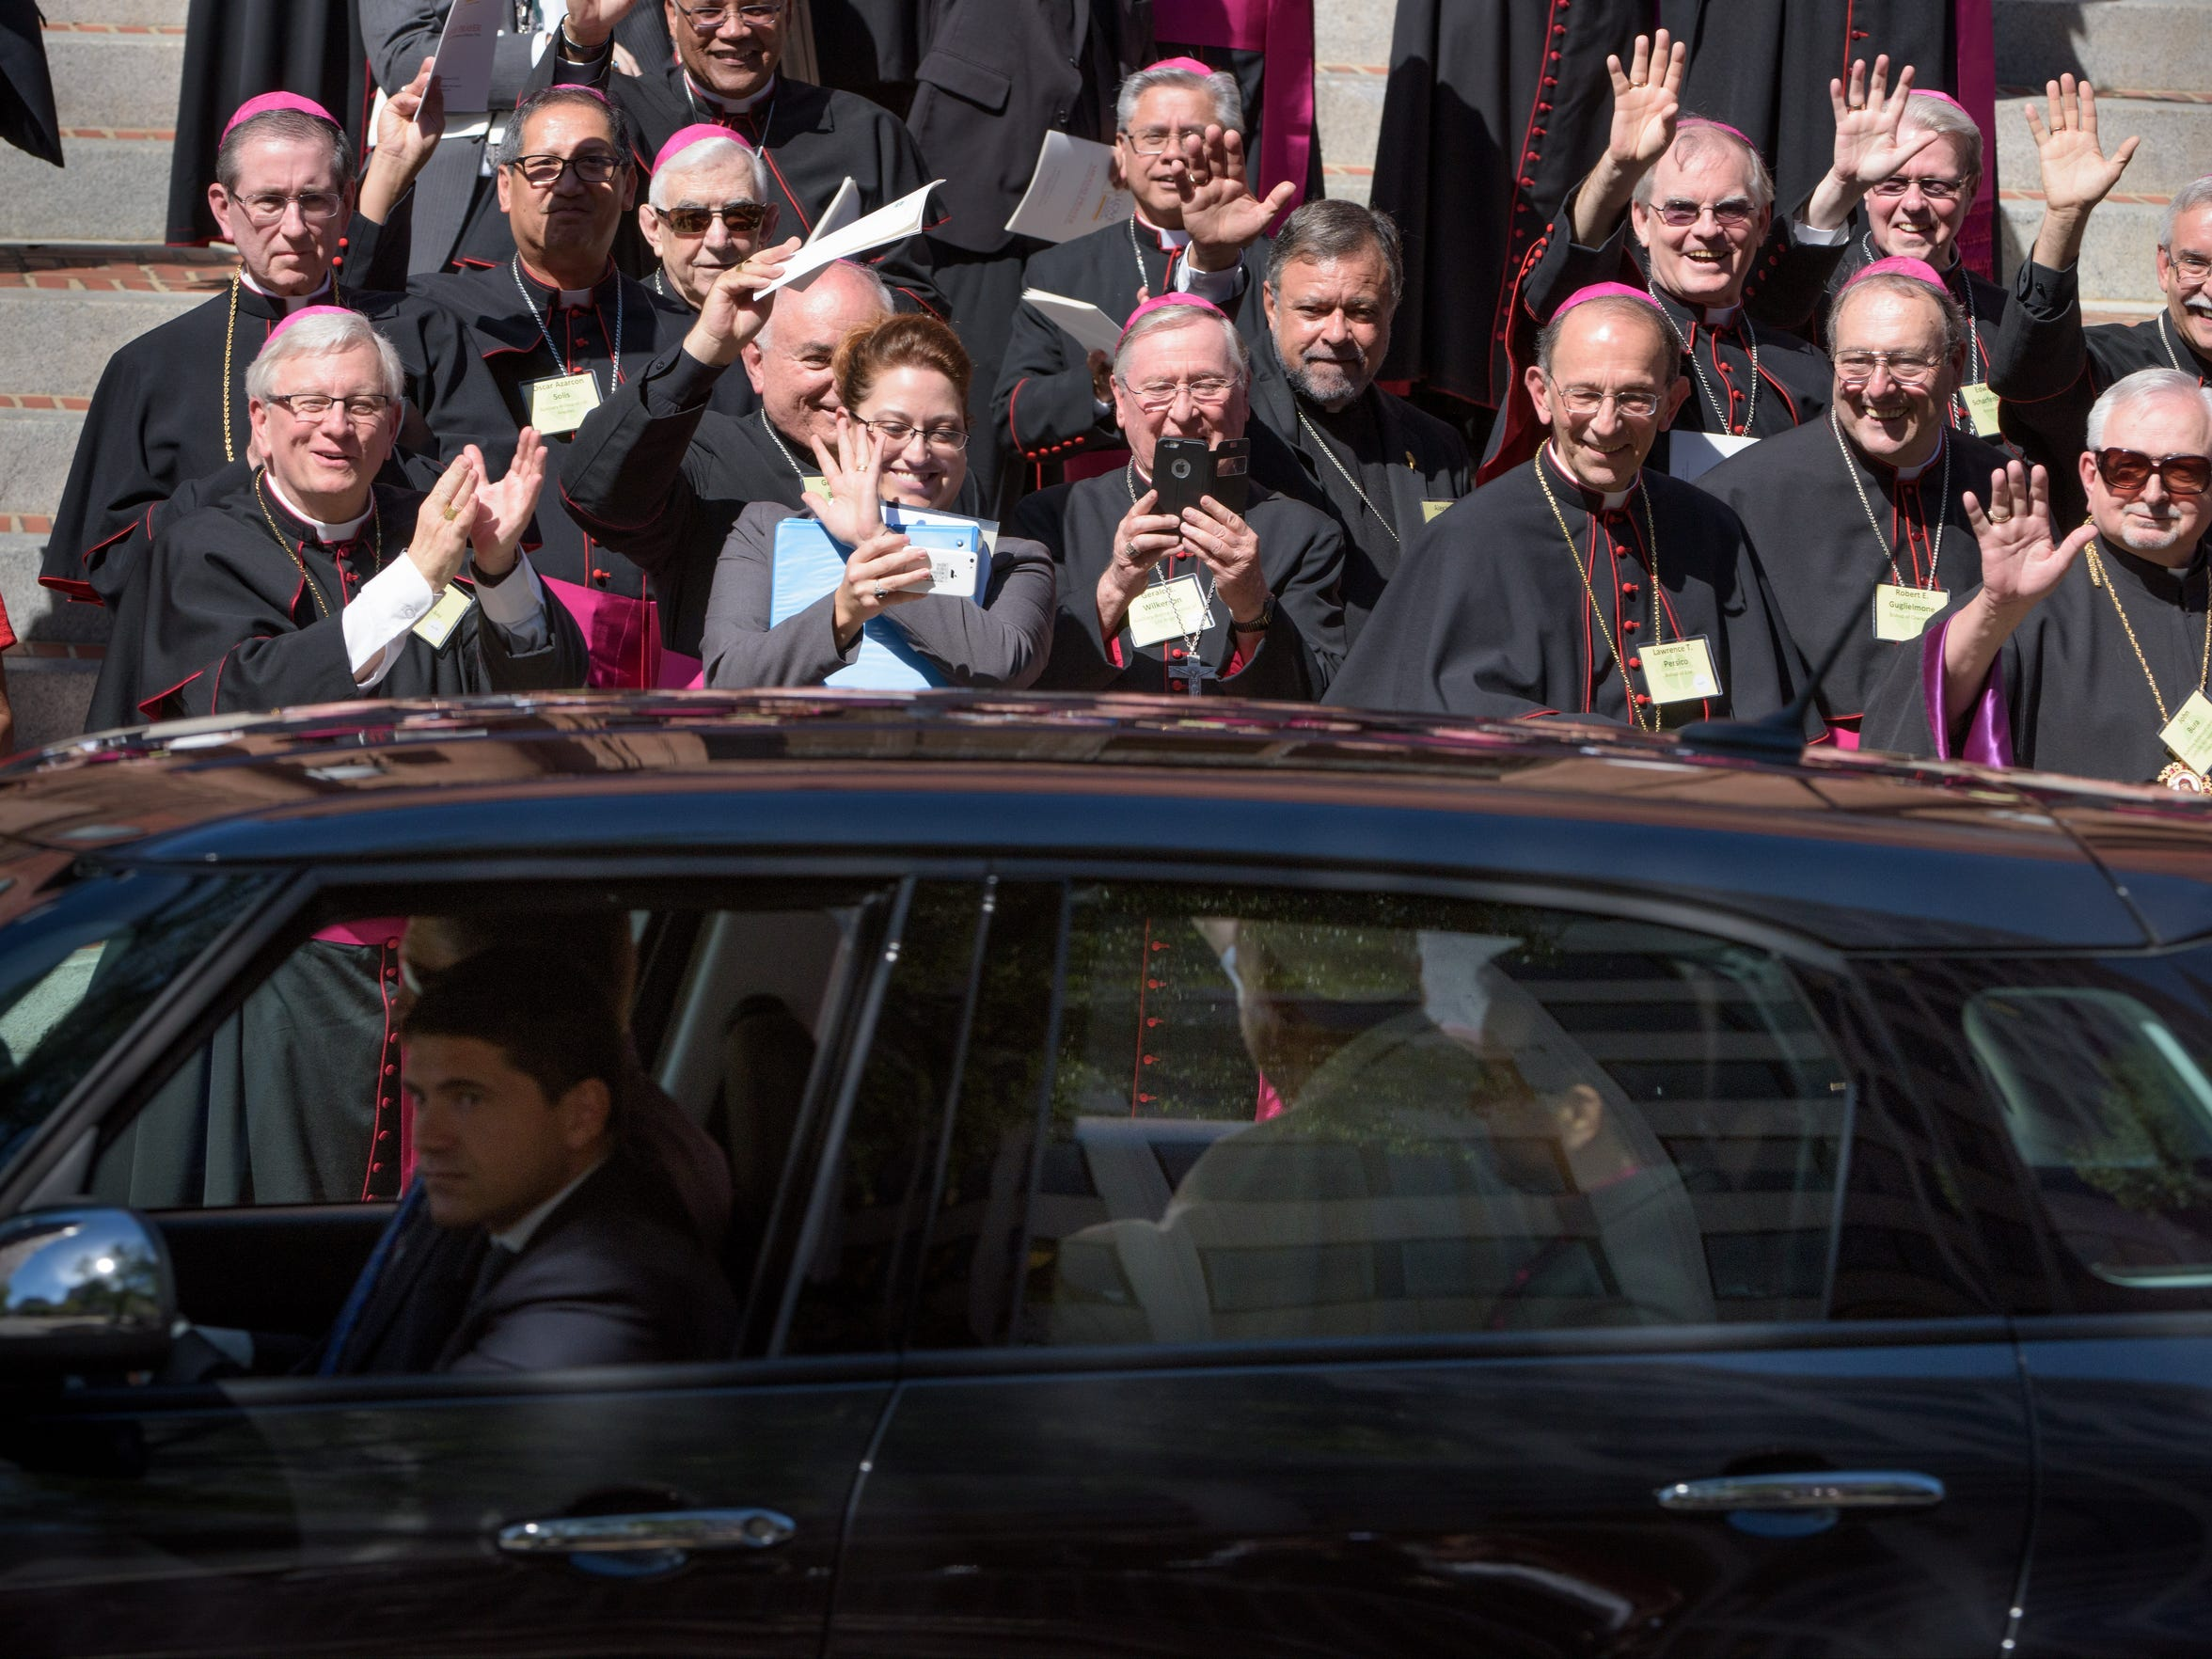 Green Bay Bishop David Ricken, front left, and others say goodbye to Pope Francis before he leaves in a vehicle outside Cathedral of St. Matthew the Apostle in Washington, D.C., after the pontiff had a prayer gathering with U.S. bishops Wednesday.